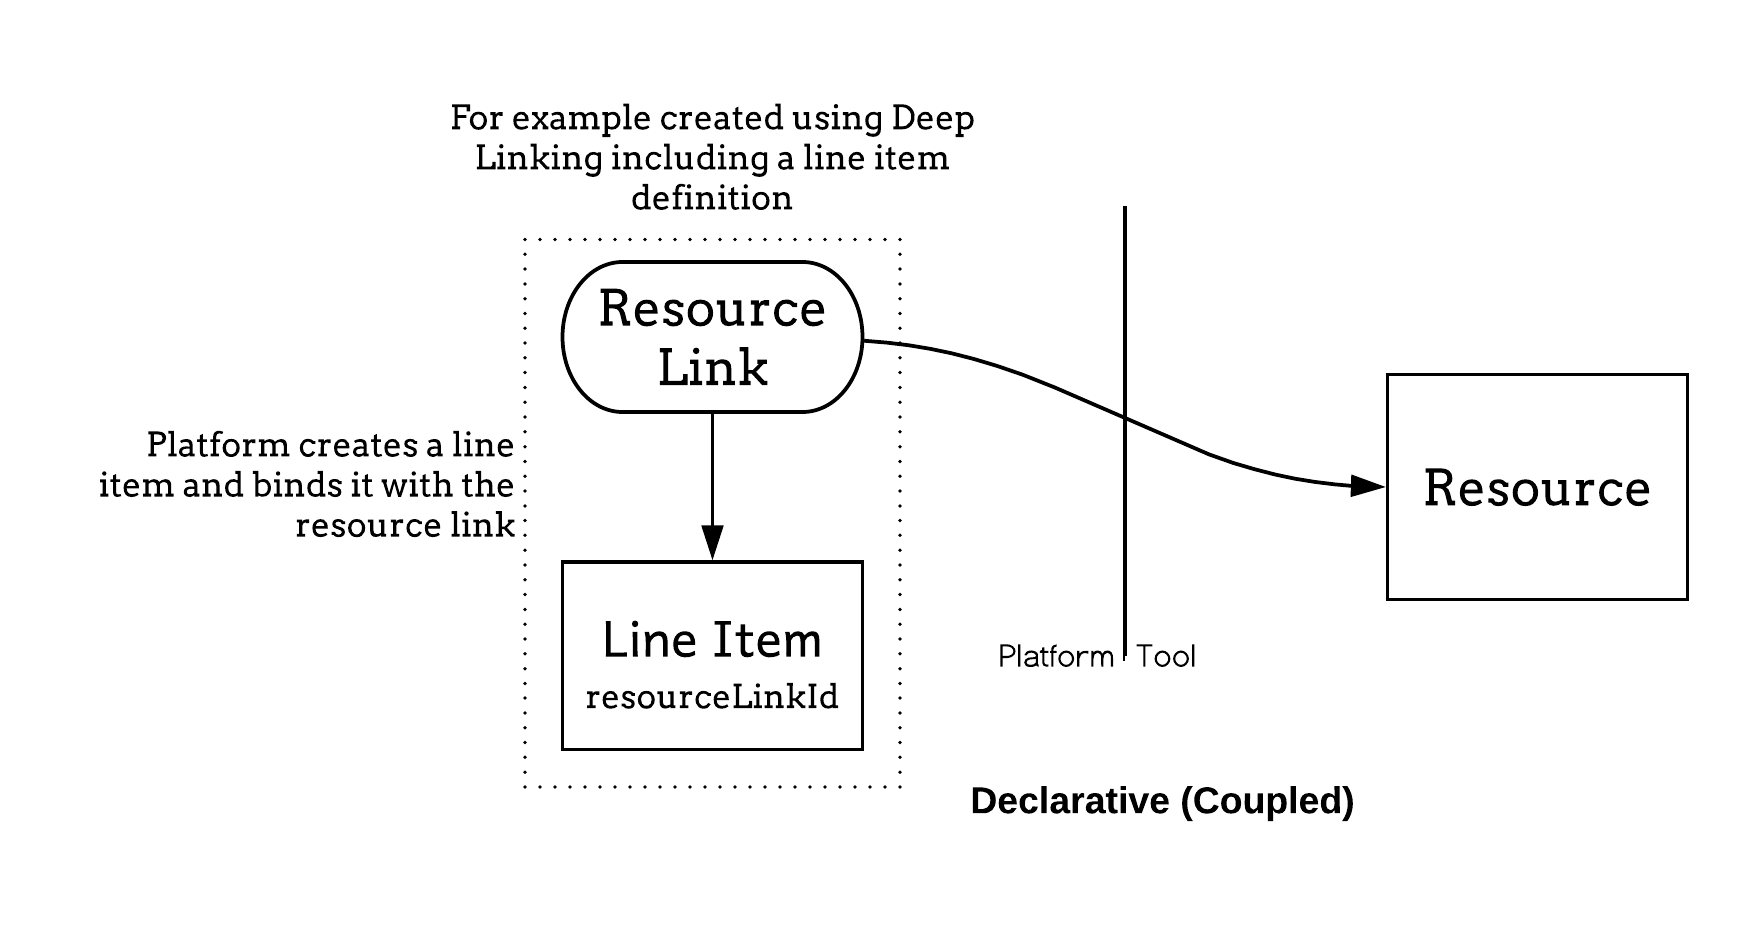 Illustrates the lifecycle of the line item